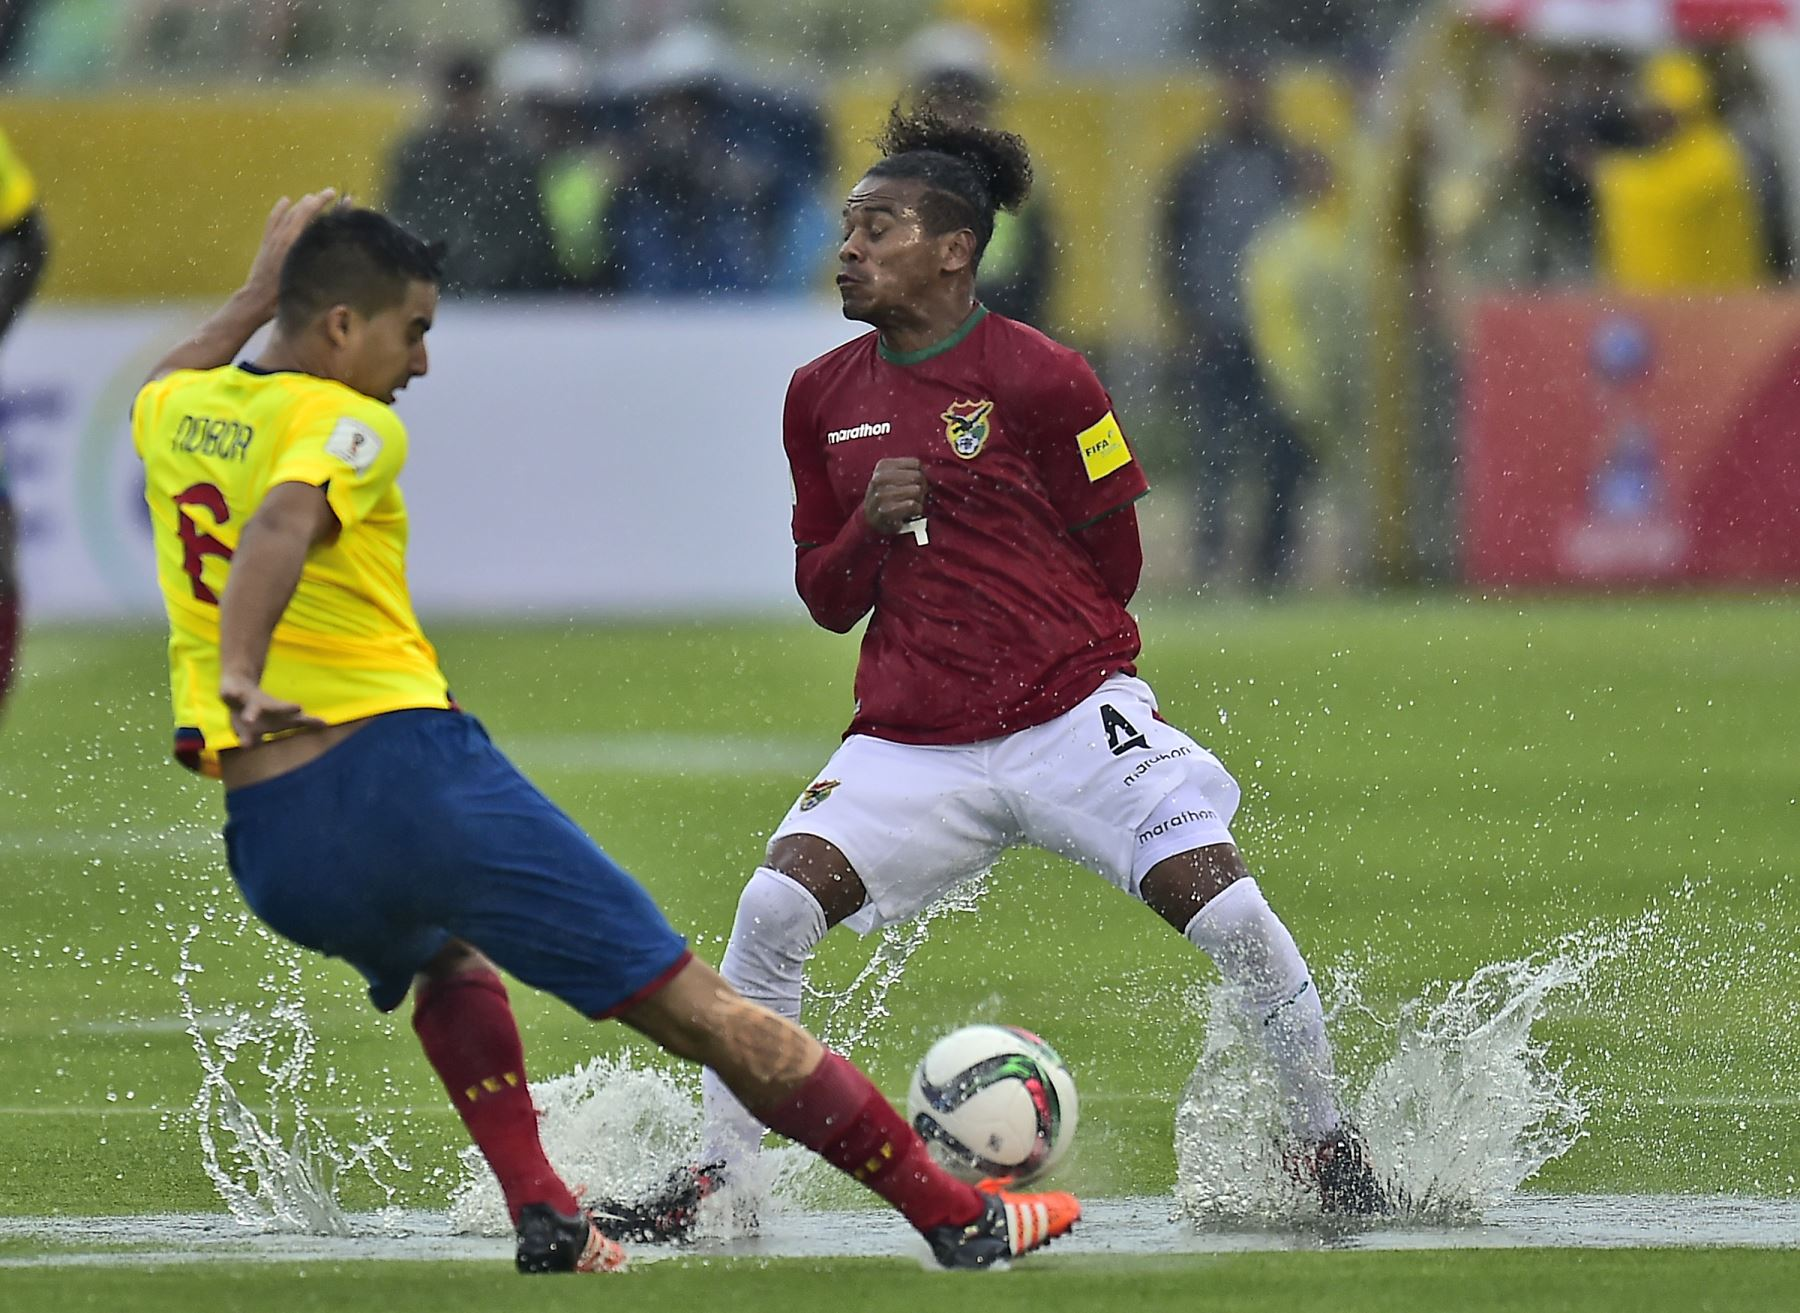 South American Qualifiers Roundup: Argentina Needs Messi Real Bad, Ecuador Continues to Own